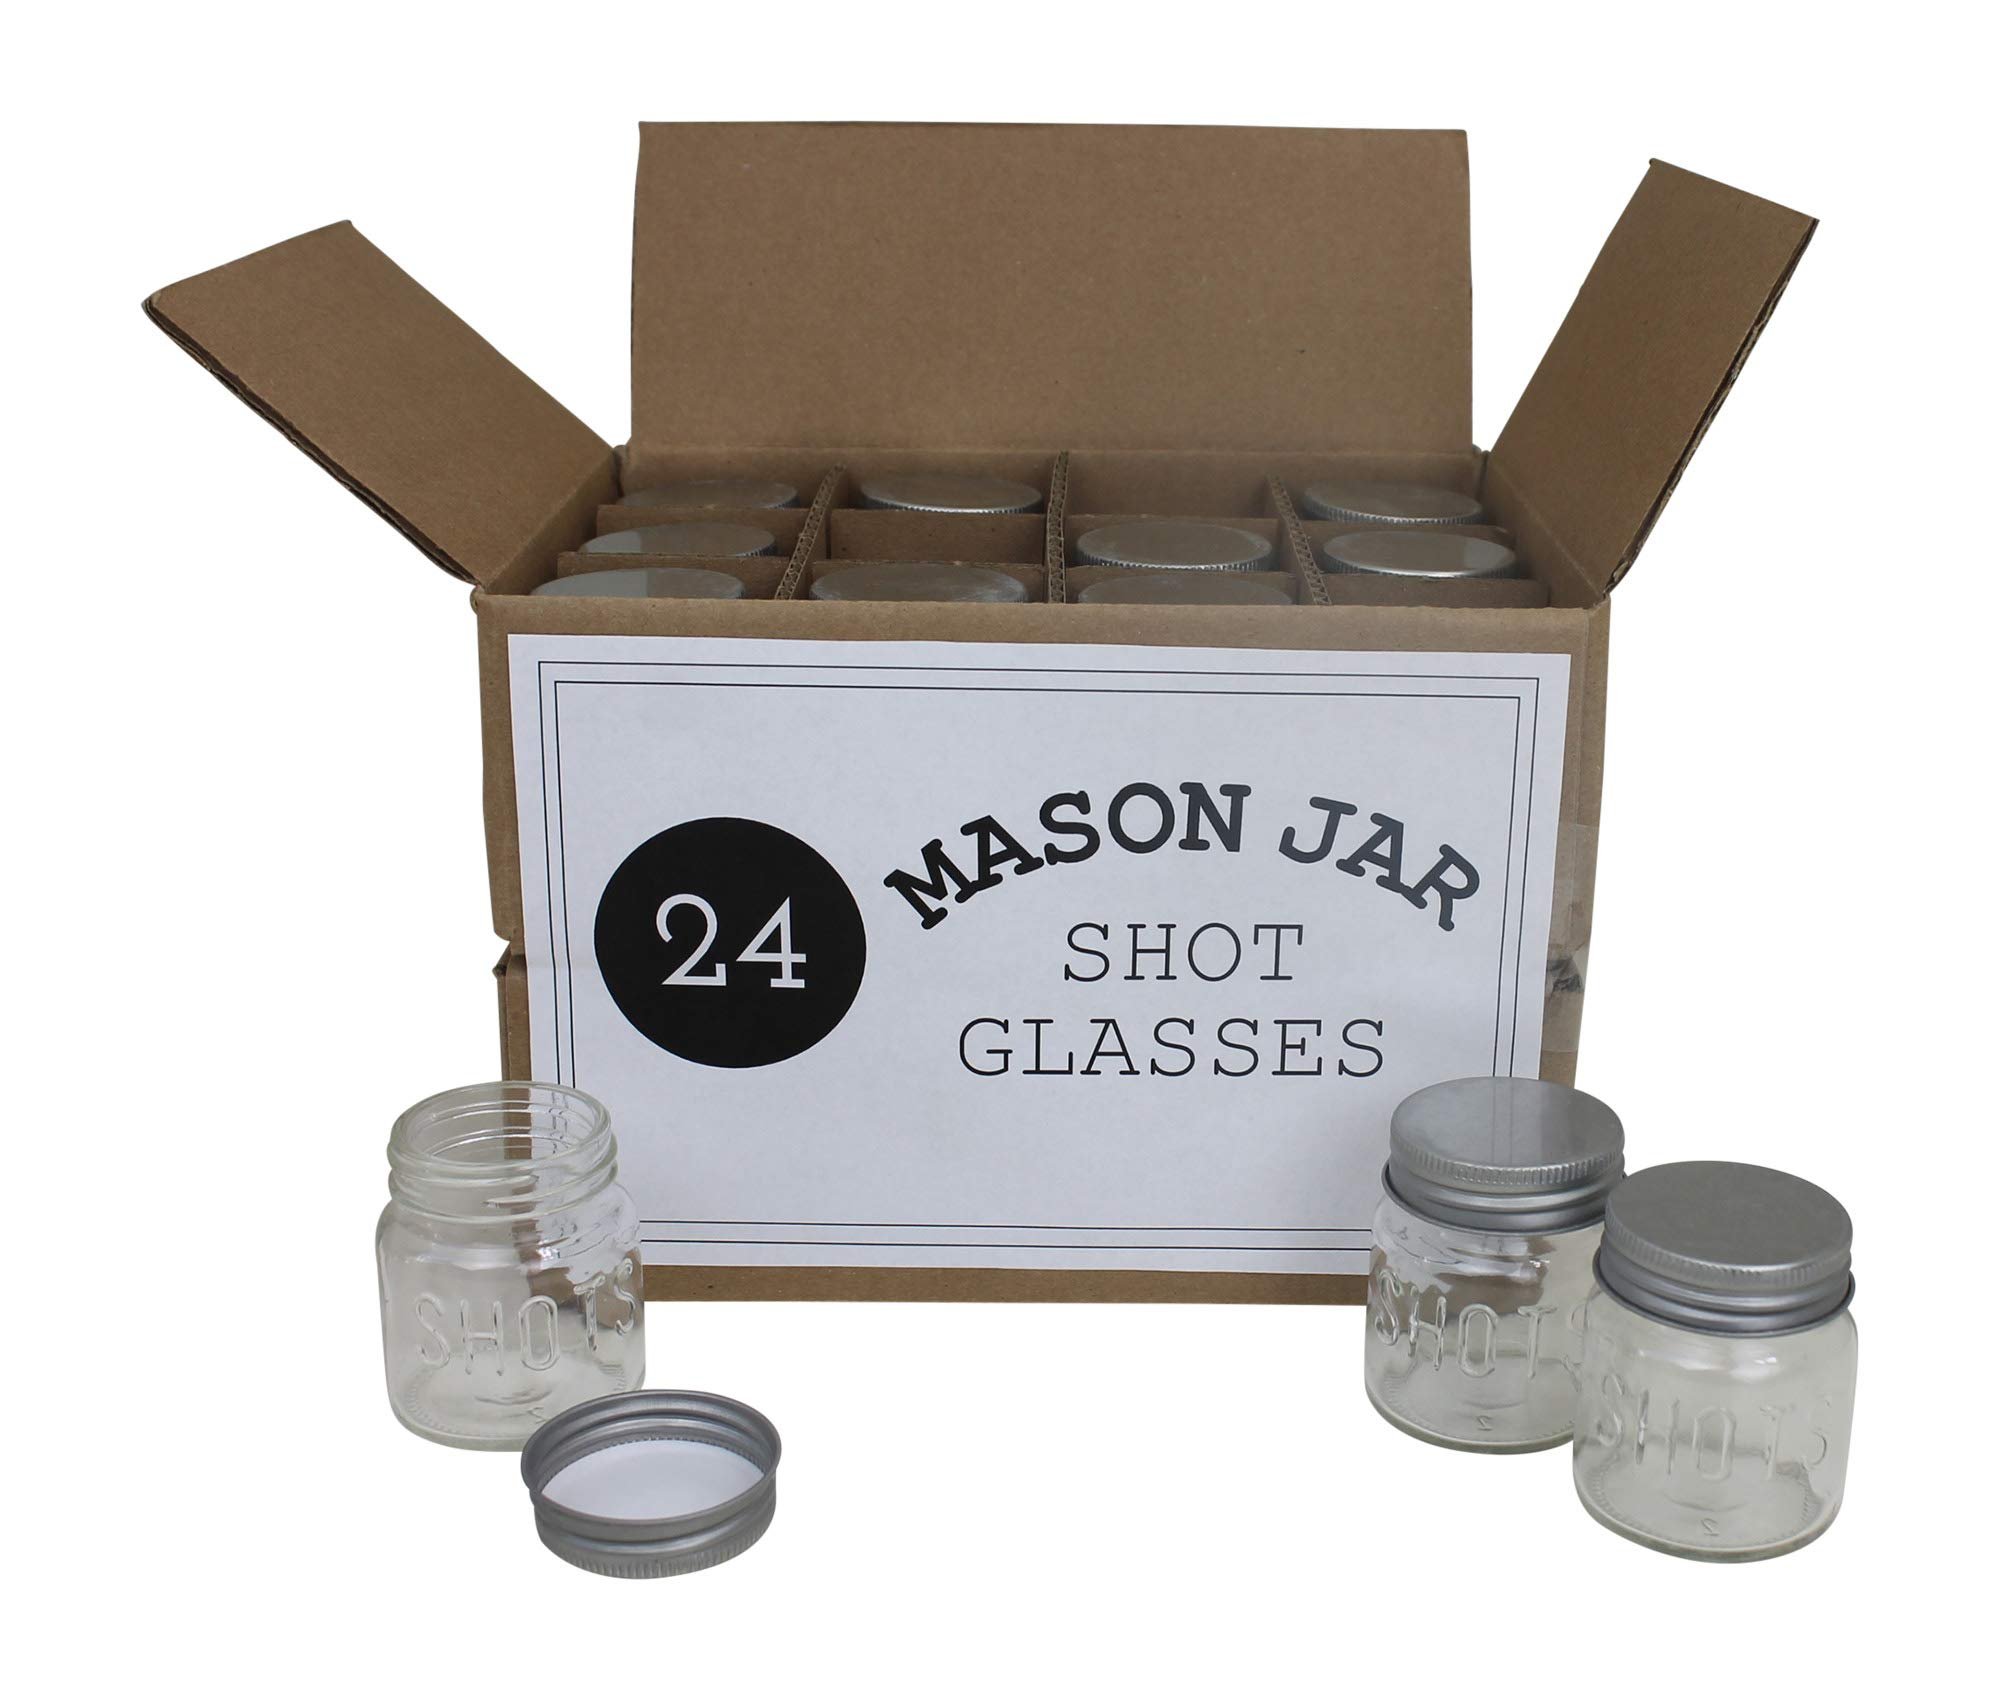 Mason Jar 2 Ounce Shot Glasses Set of 24 With Leak-Proof Lids - Great For Shots, Drinks, Favors, Candles And Crafts by Mason Jar Warehouse